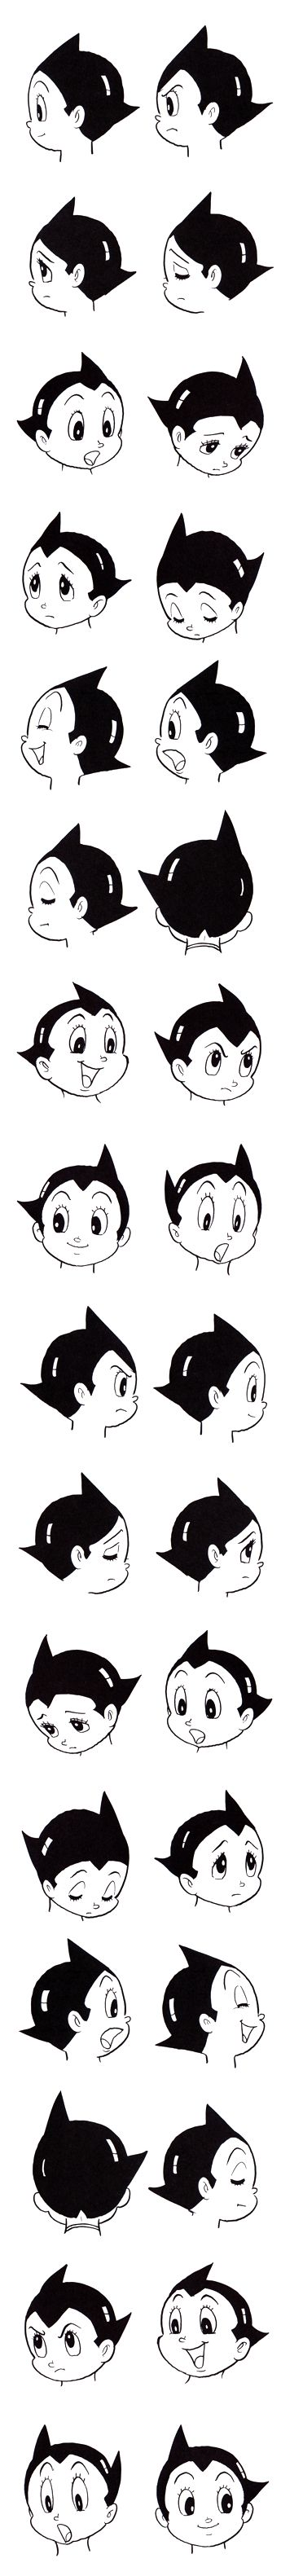 """Astro Boy 鉄腕アトム"" by 手塚 治虫 Osamu Tezuka* • Blog/Info 